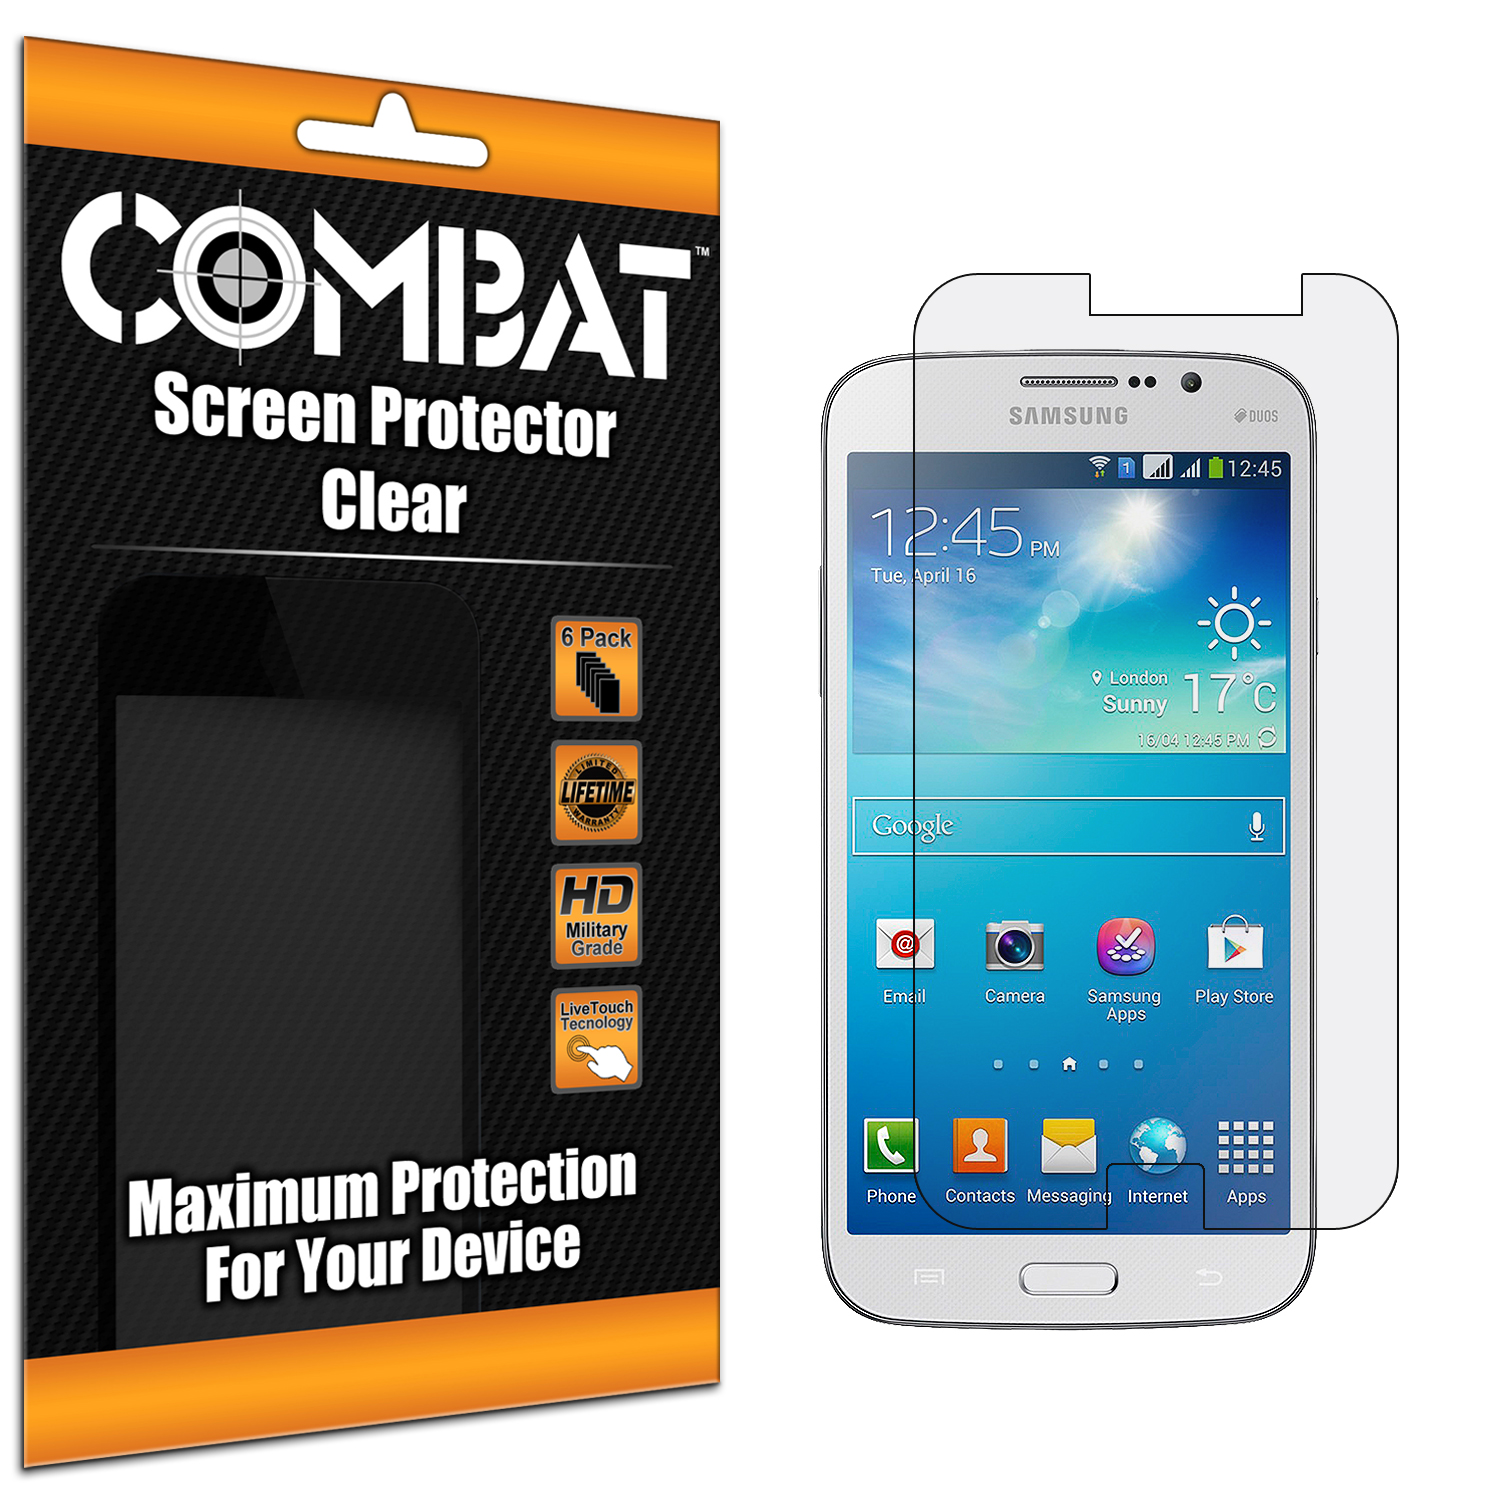 Samsung Galaxy Mega 5.8 Combat 6 Pack HD Clear Screen Protector